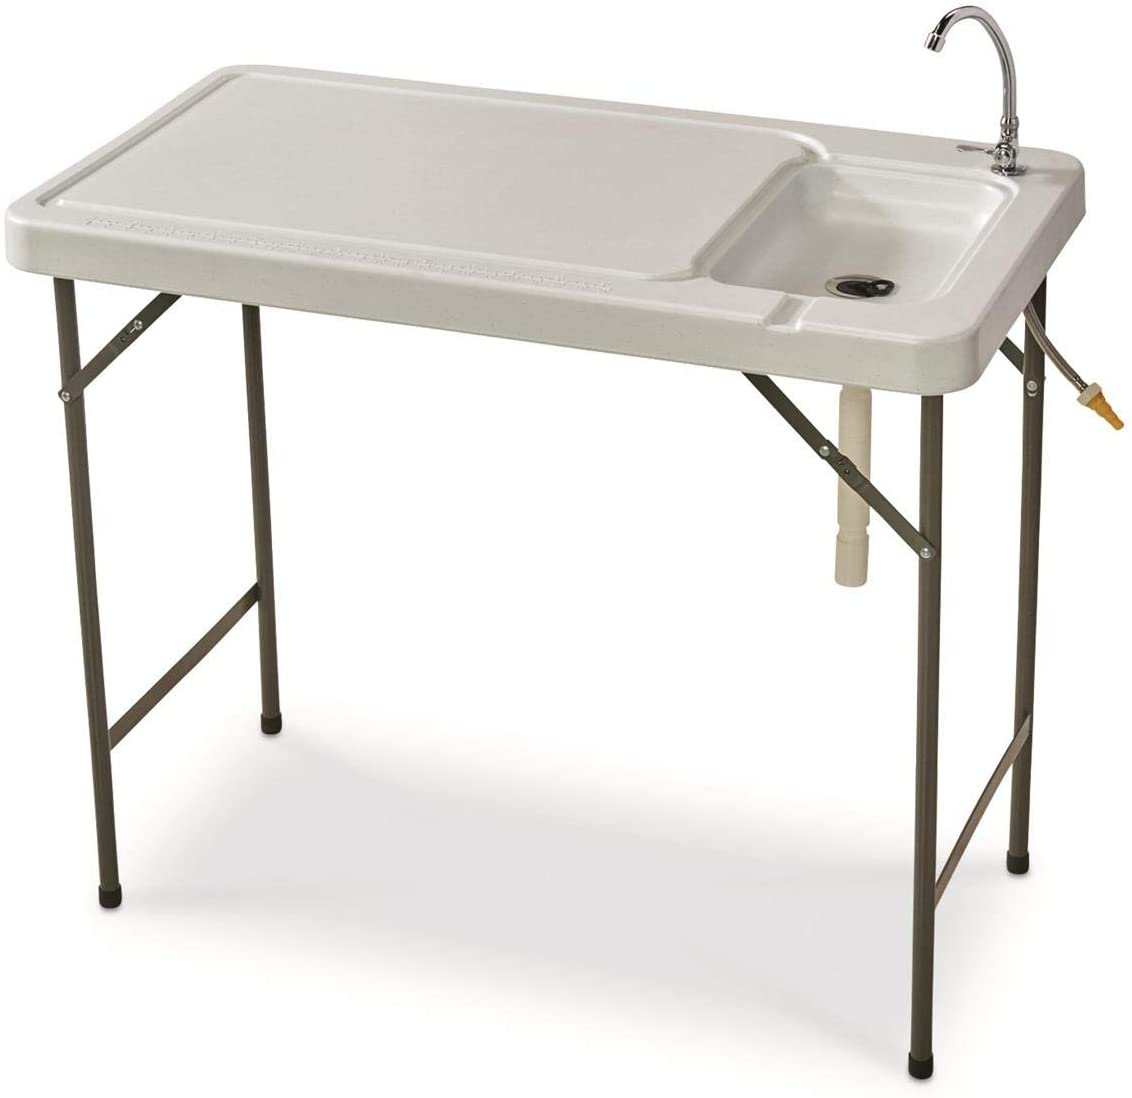 Guide Gear Portable Folding Fish/Game Cleaning Camp Table with Sink and Faucet, Outdoor Fishing Washing Station for Boat, Dock